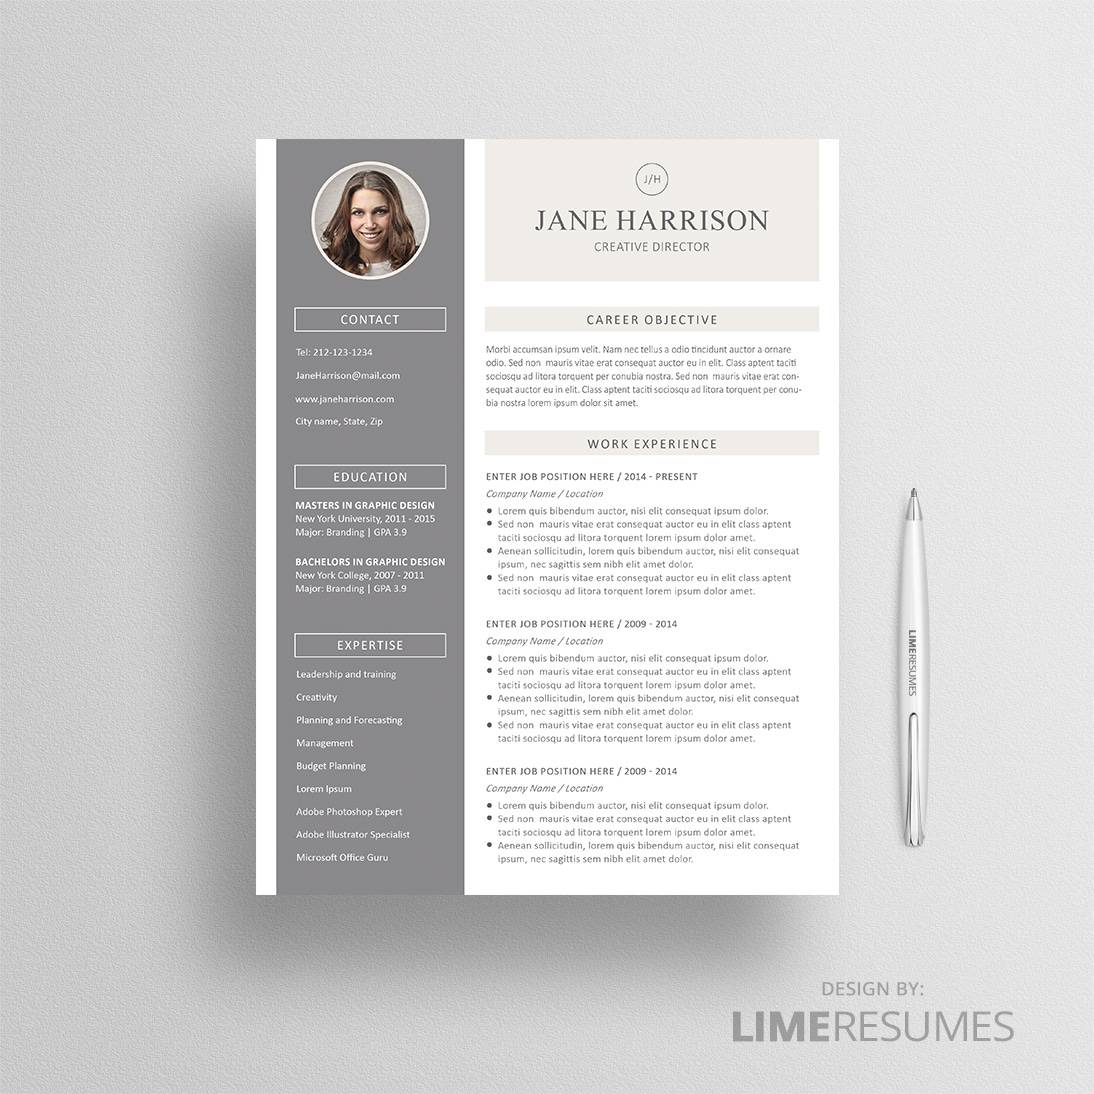 Resume With Photo 2 Page Photo Resume LimeResumes